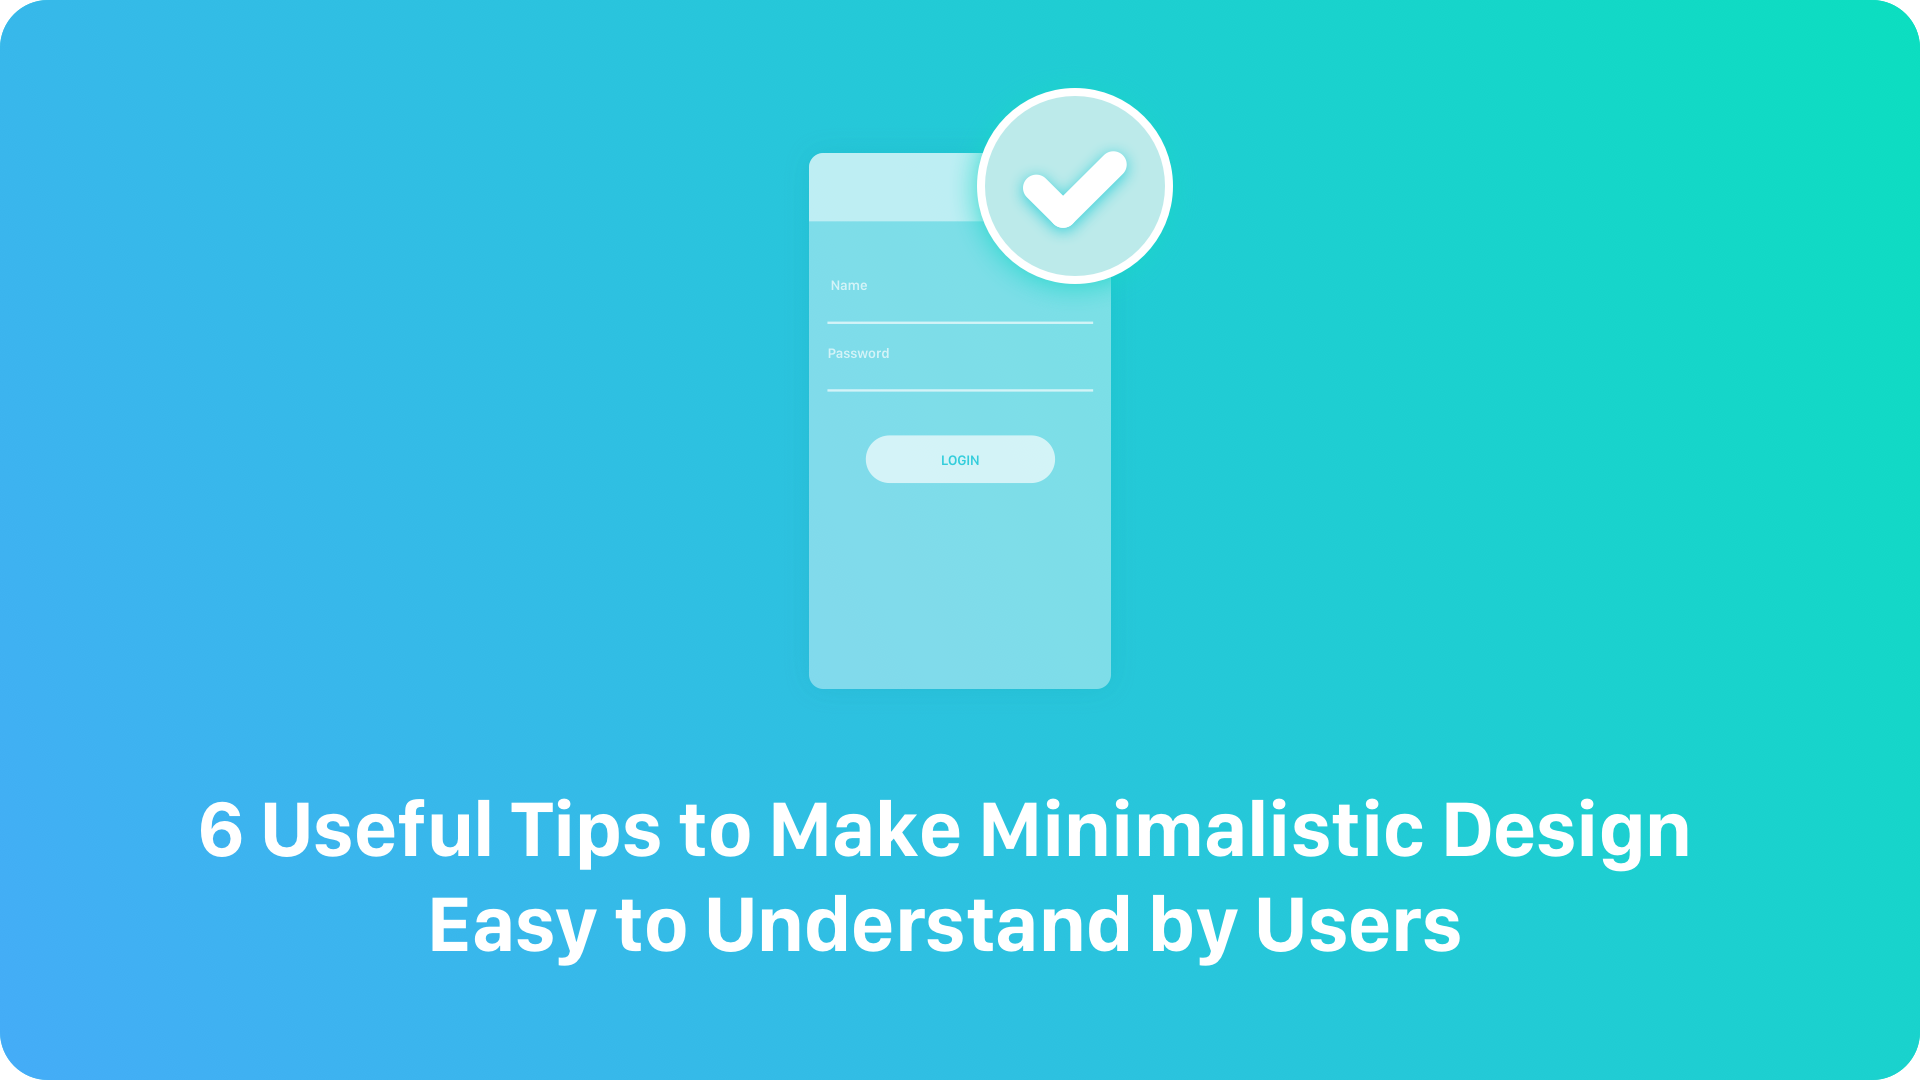 6 useful tips to make minimalistic design easy to understand